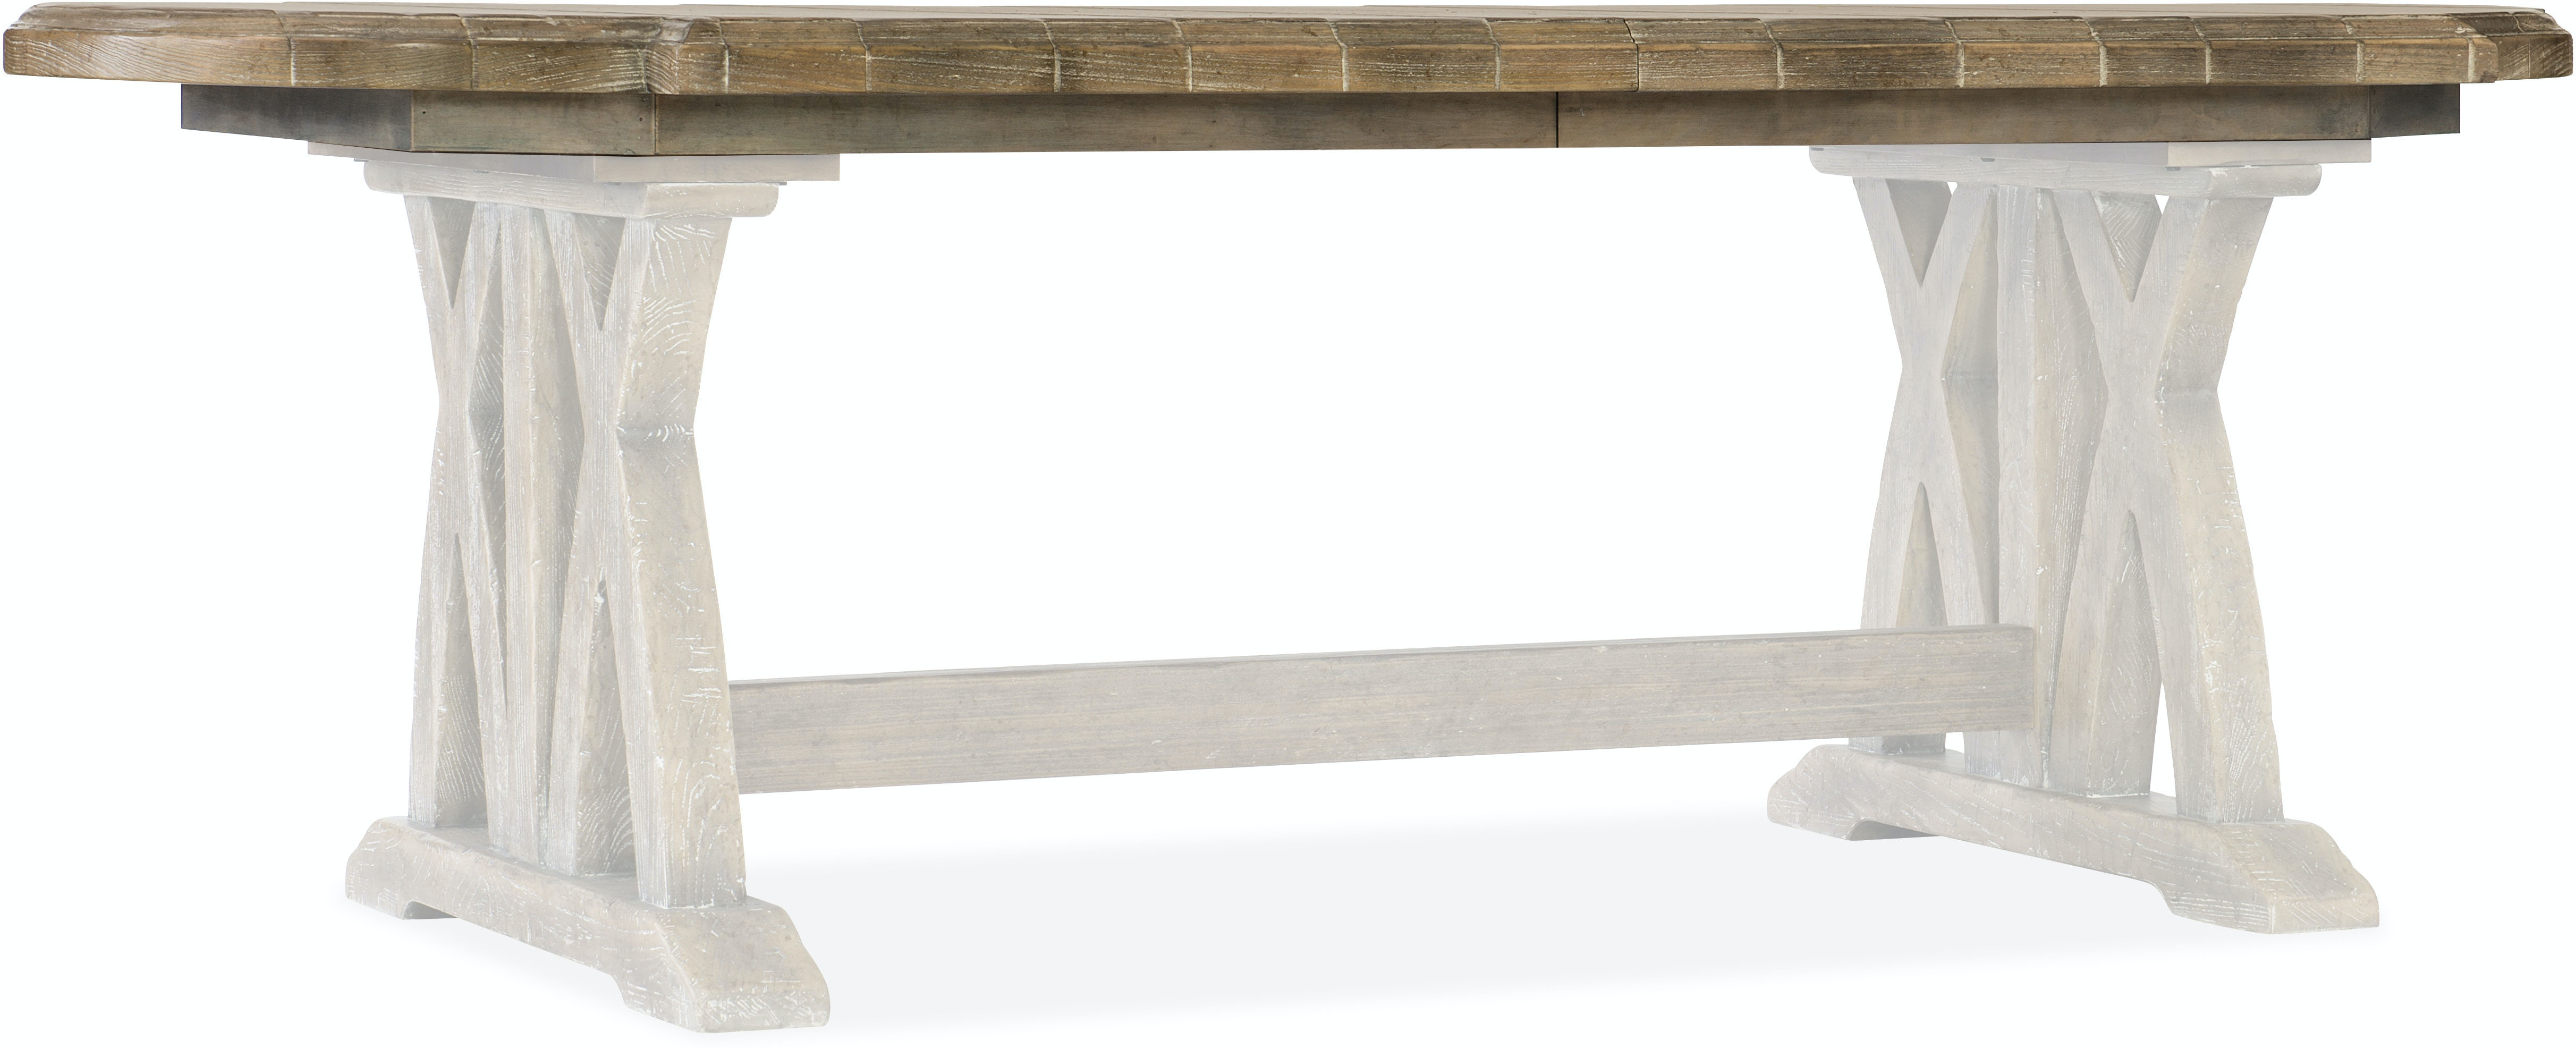 Hooker Furniture Dining Room Boheme Colibri 88in Trestle Dining Table W 1 20in Leaf 5750 75200 Mwd